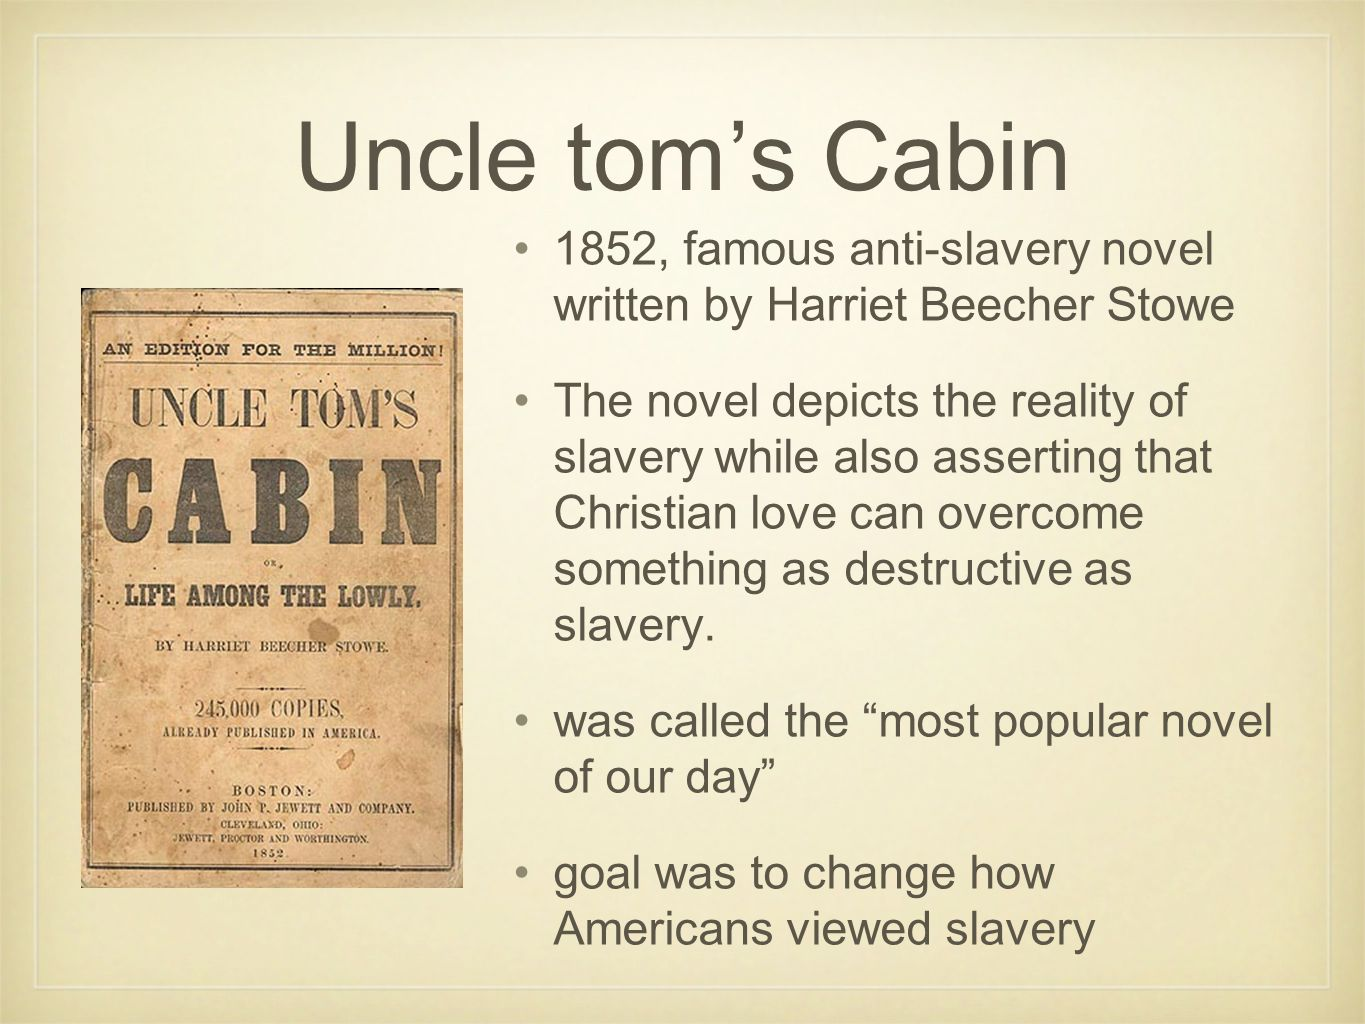 Uncle tom's Cabin 1852, famous anti-slavery novel written by Harriet Beecher Stowe The novel depicts the reality of slavery while also asserting that Christian love can overcome something as destructive as slavery.